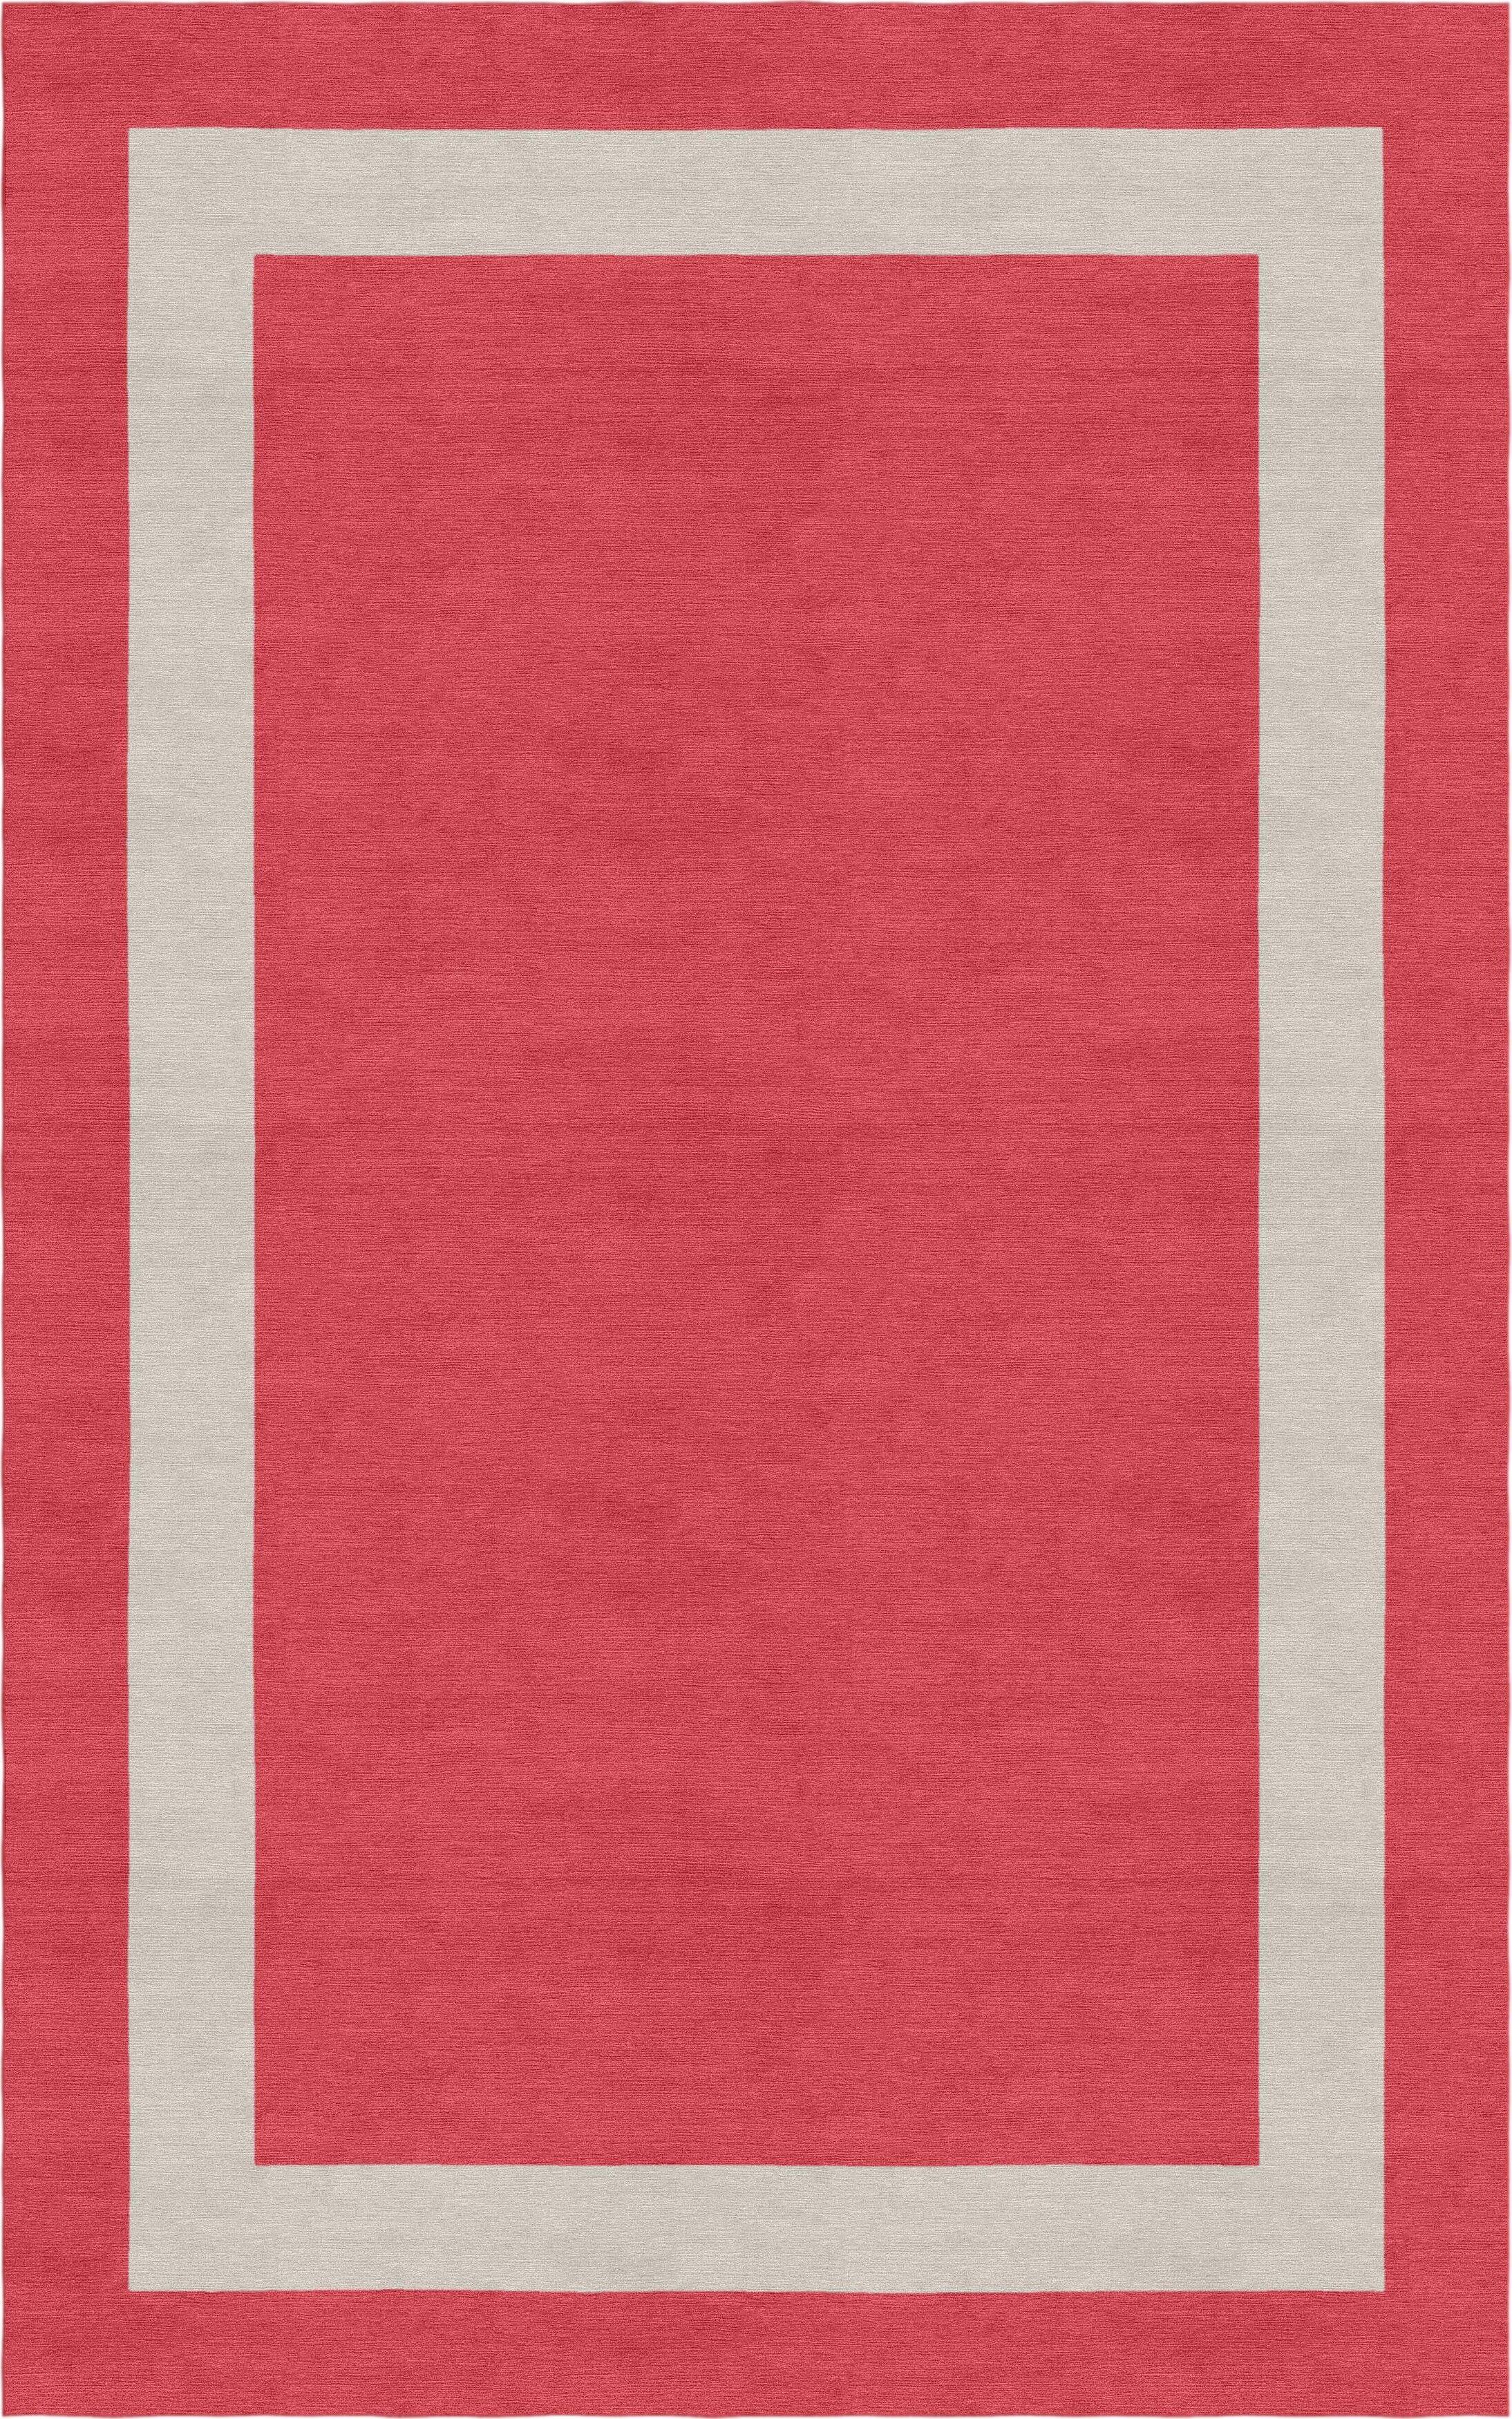 Whitecavage Border Hand-Tufted Wool Red/Silver Area Rug Rug Size: Rectangle 5' x 8'